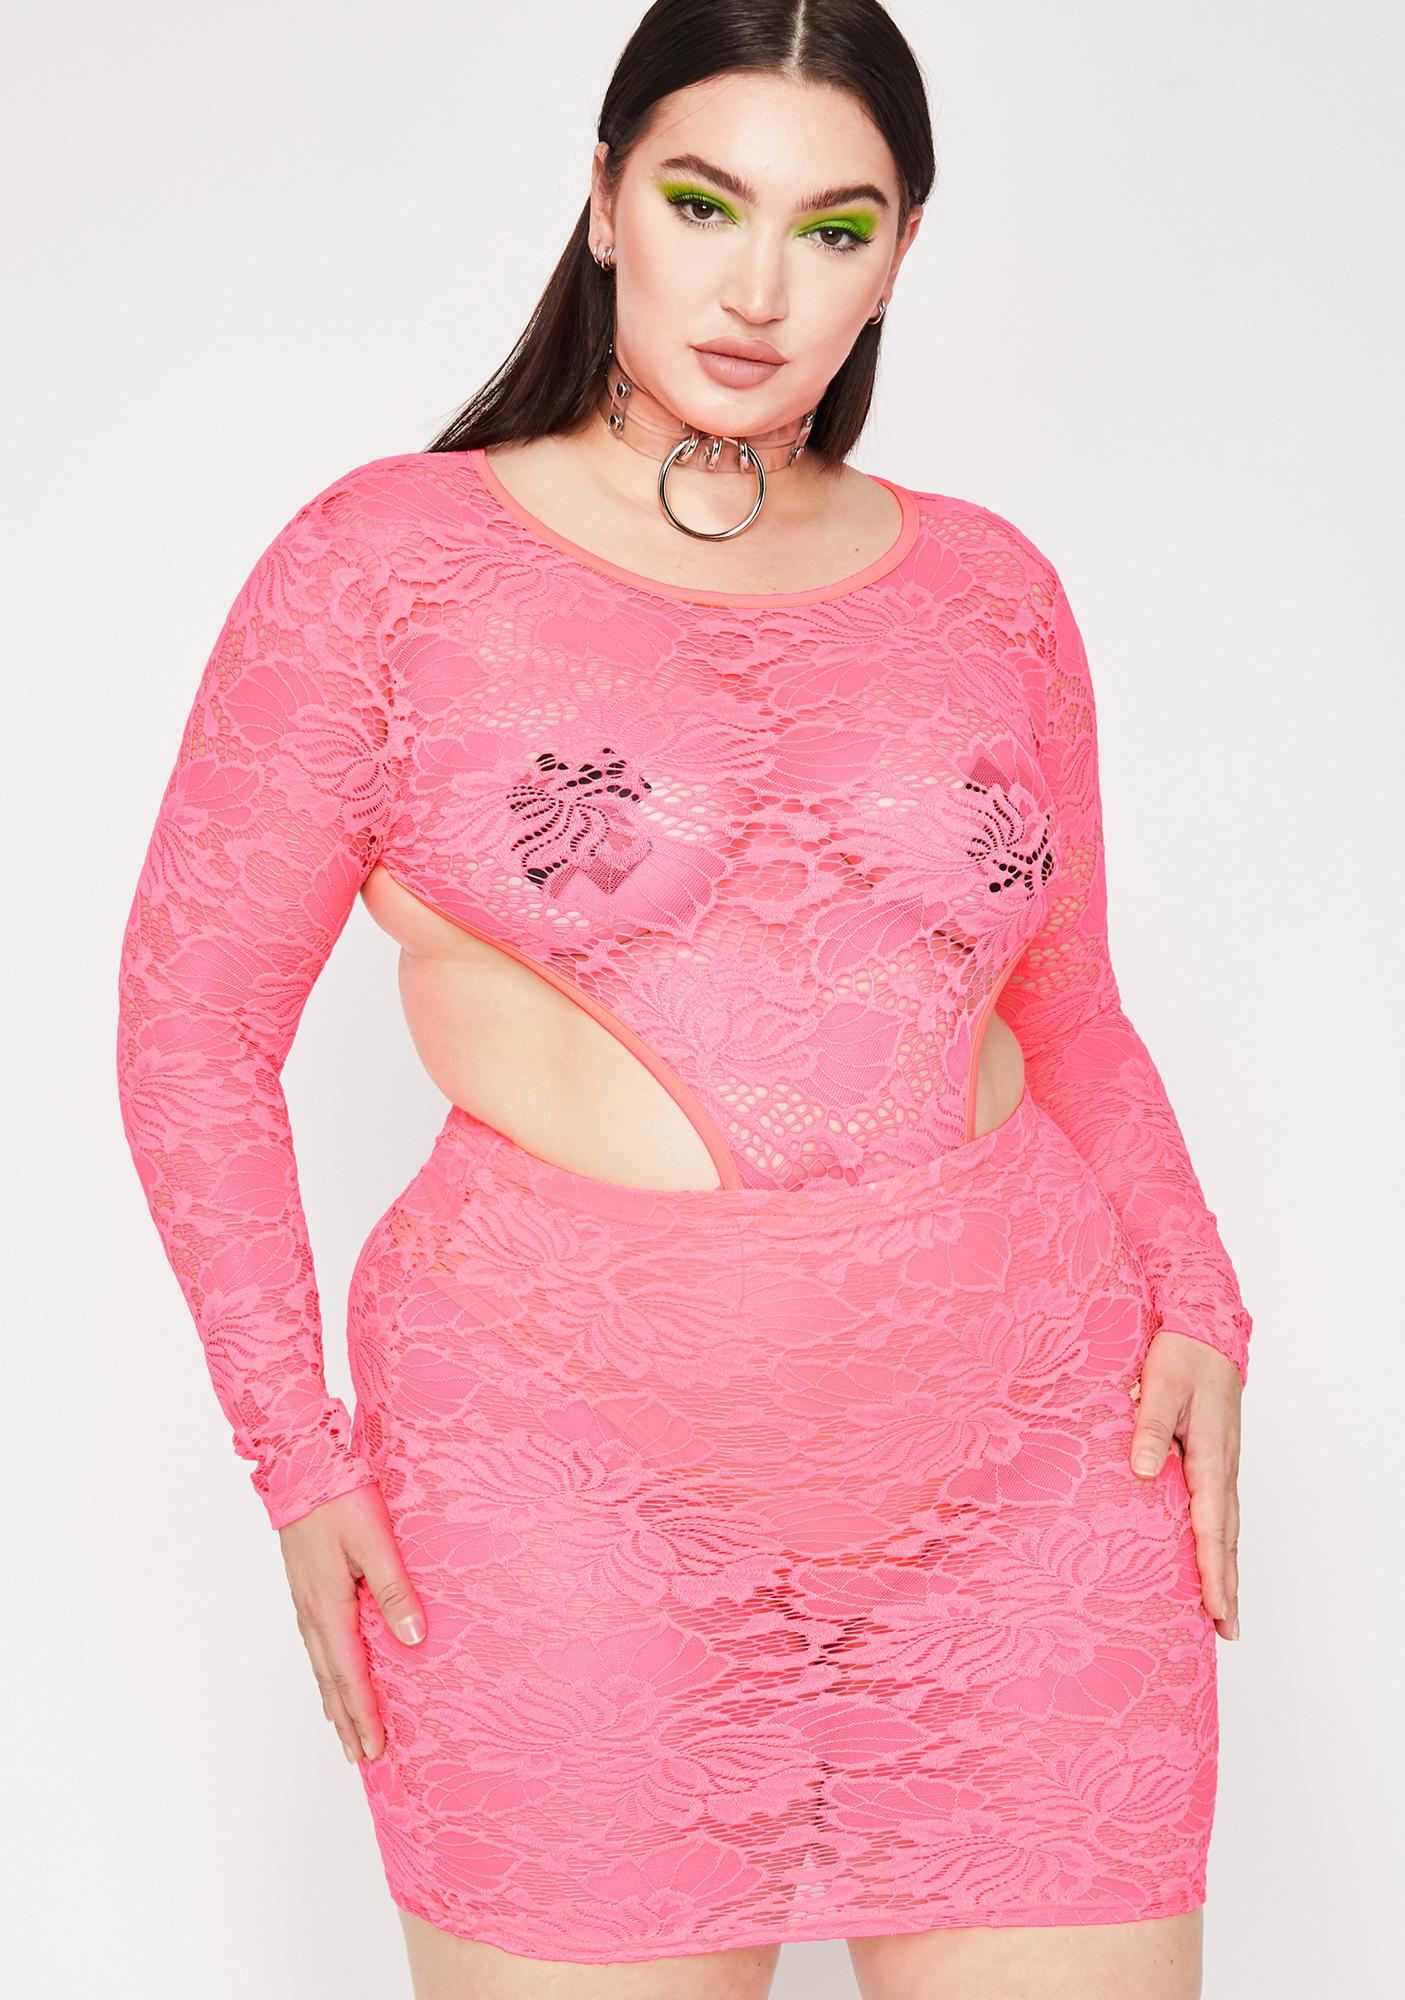 660f2b47589 Plus Size Neon Pink Lace Cut-Out Bodycon Dress